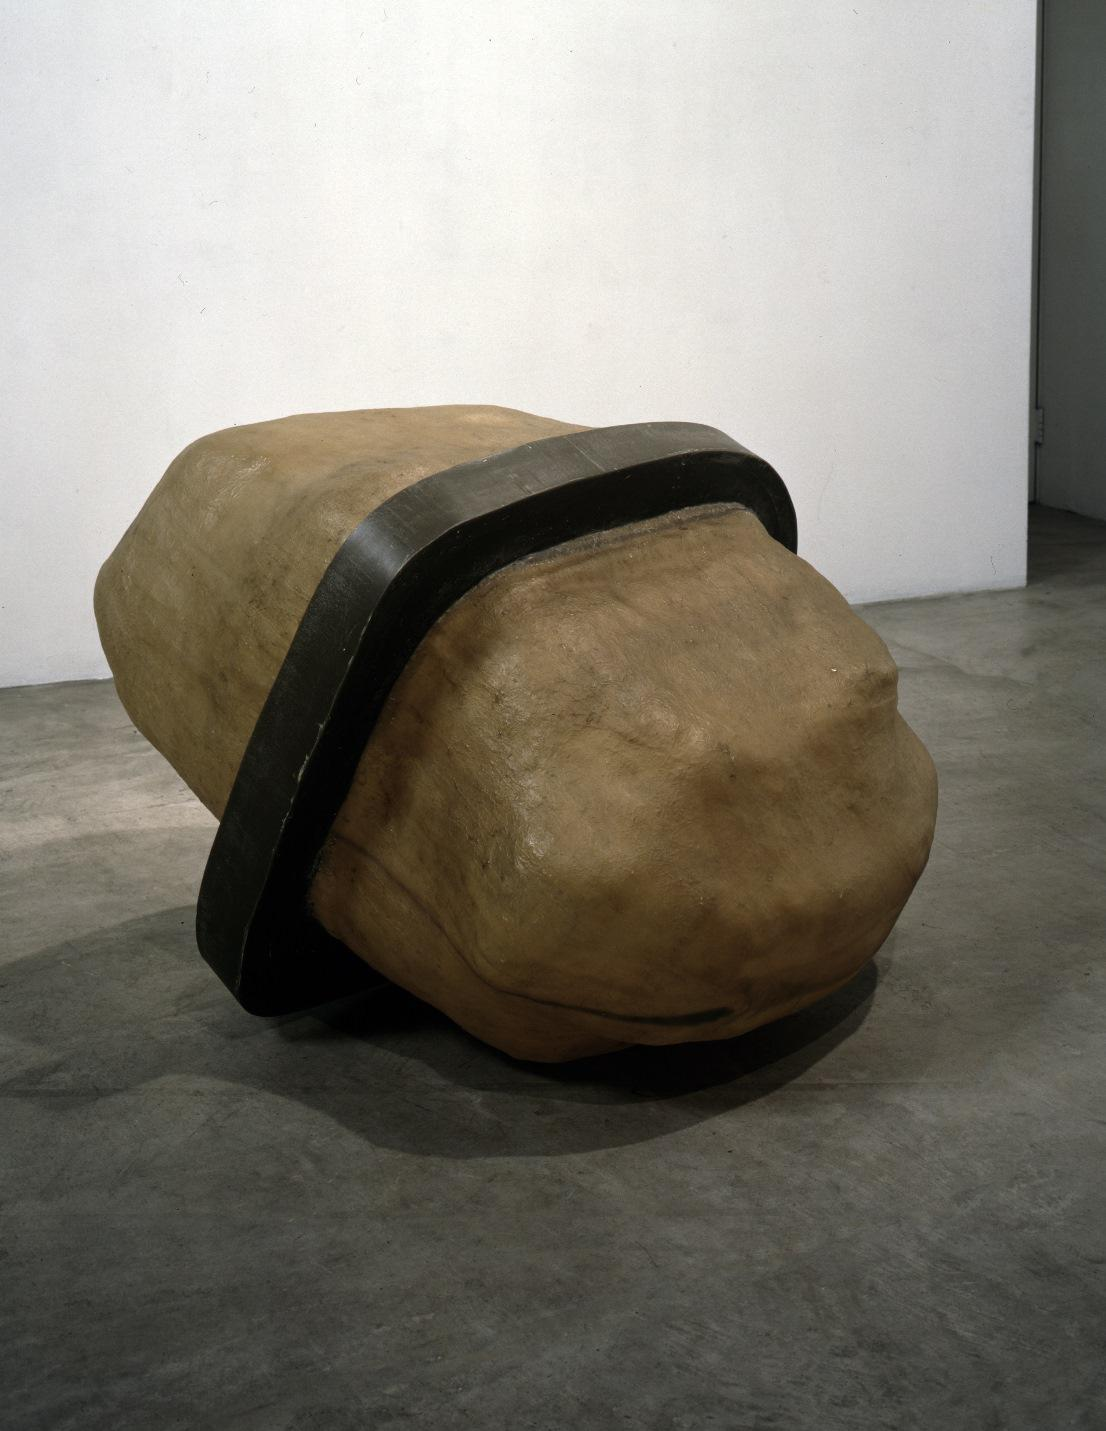 Richard Deacon / Měšec